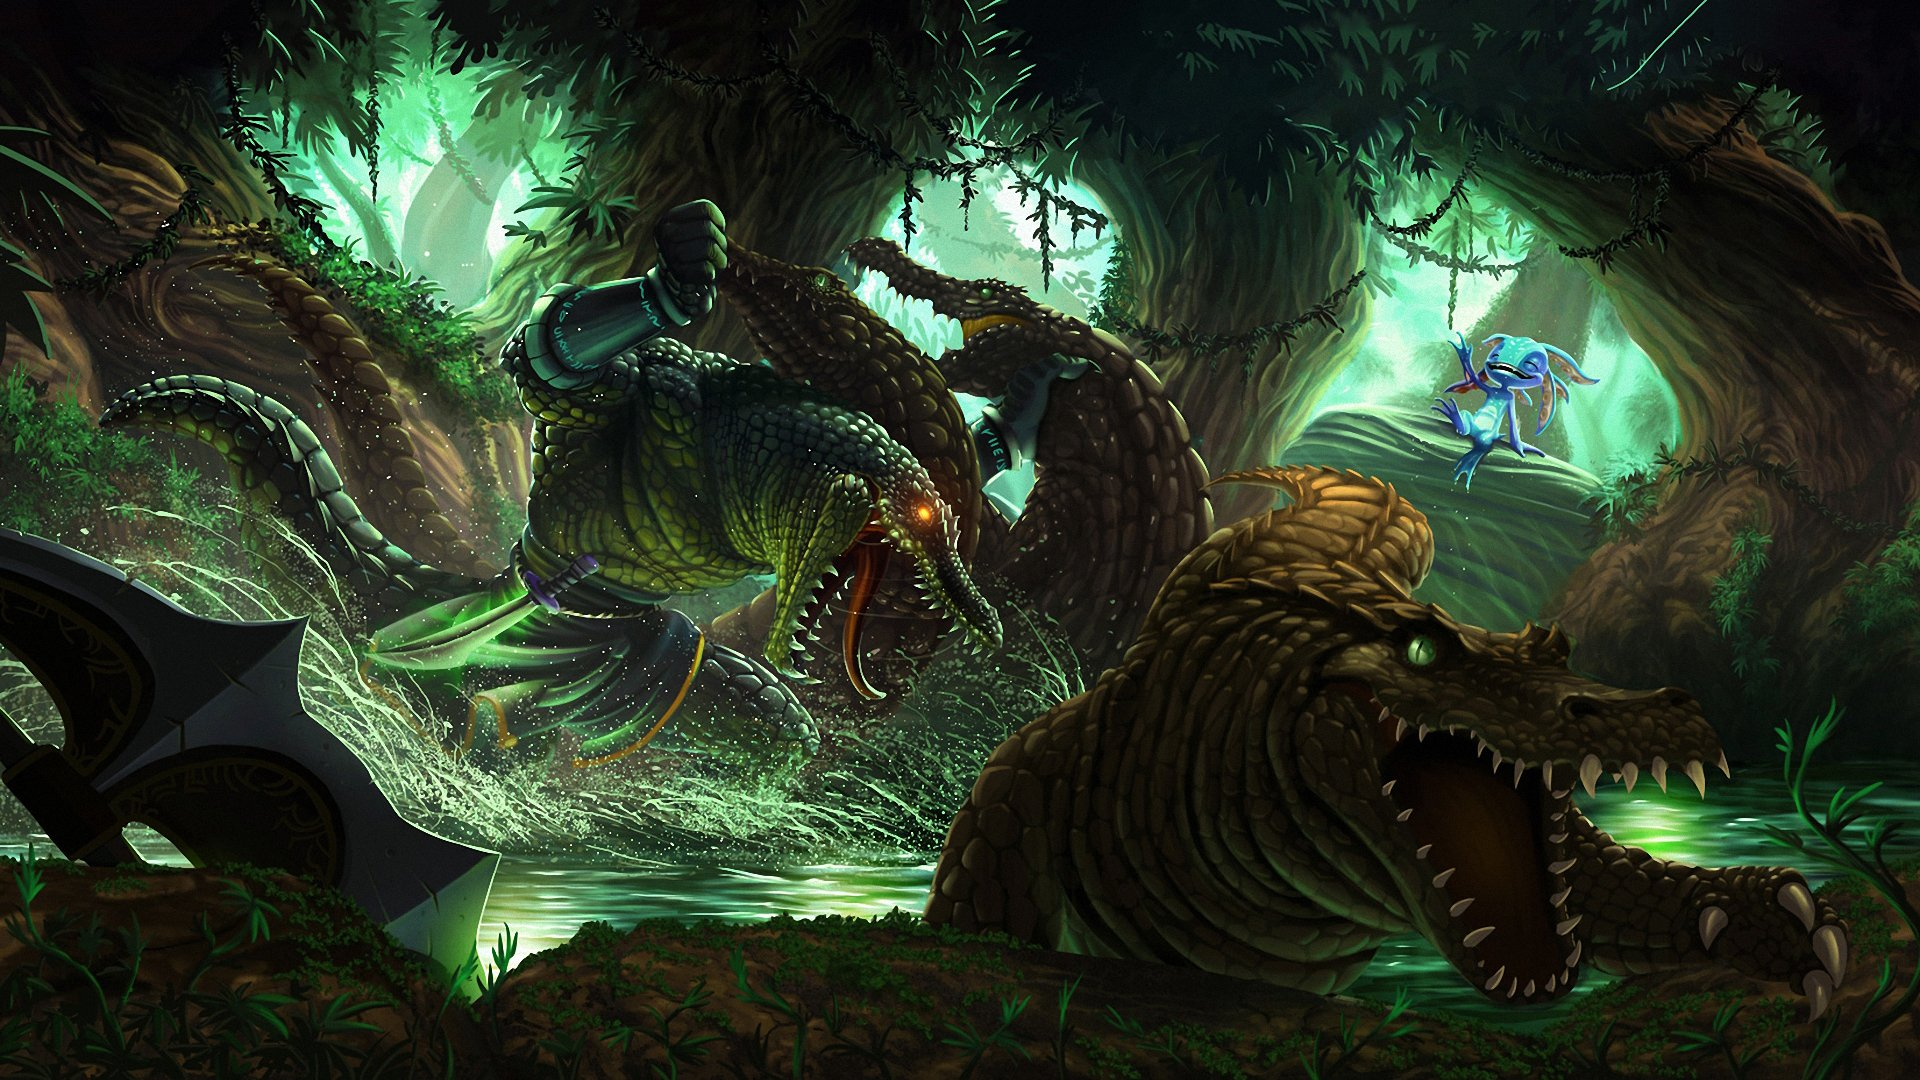 33 Renekton League Of Legends Hd Wallpapers Background